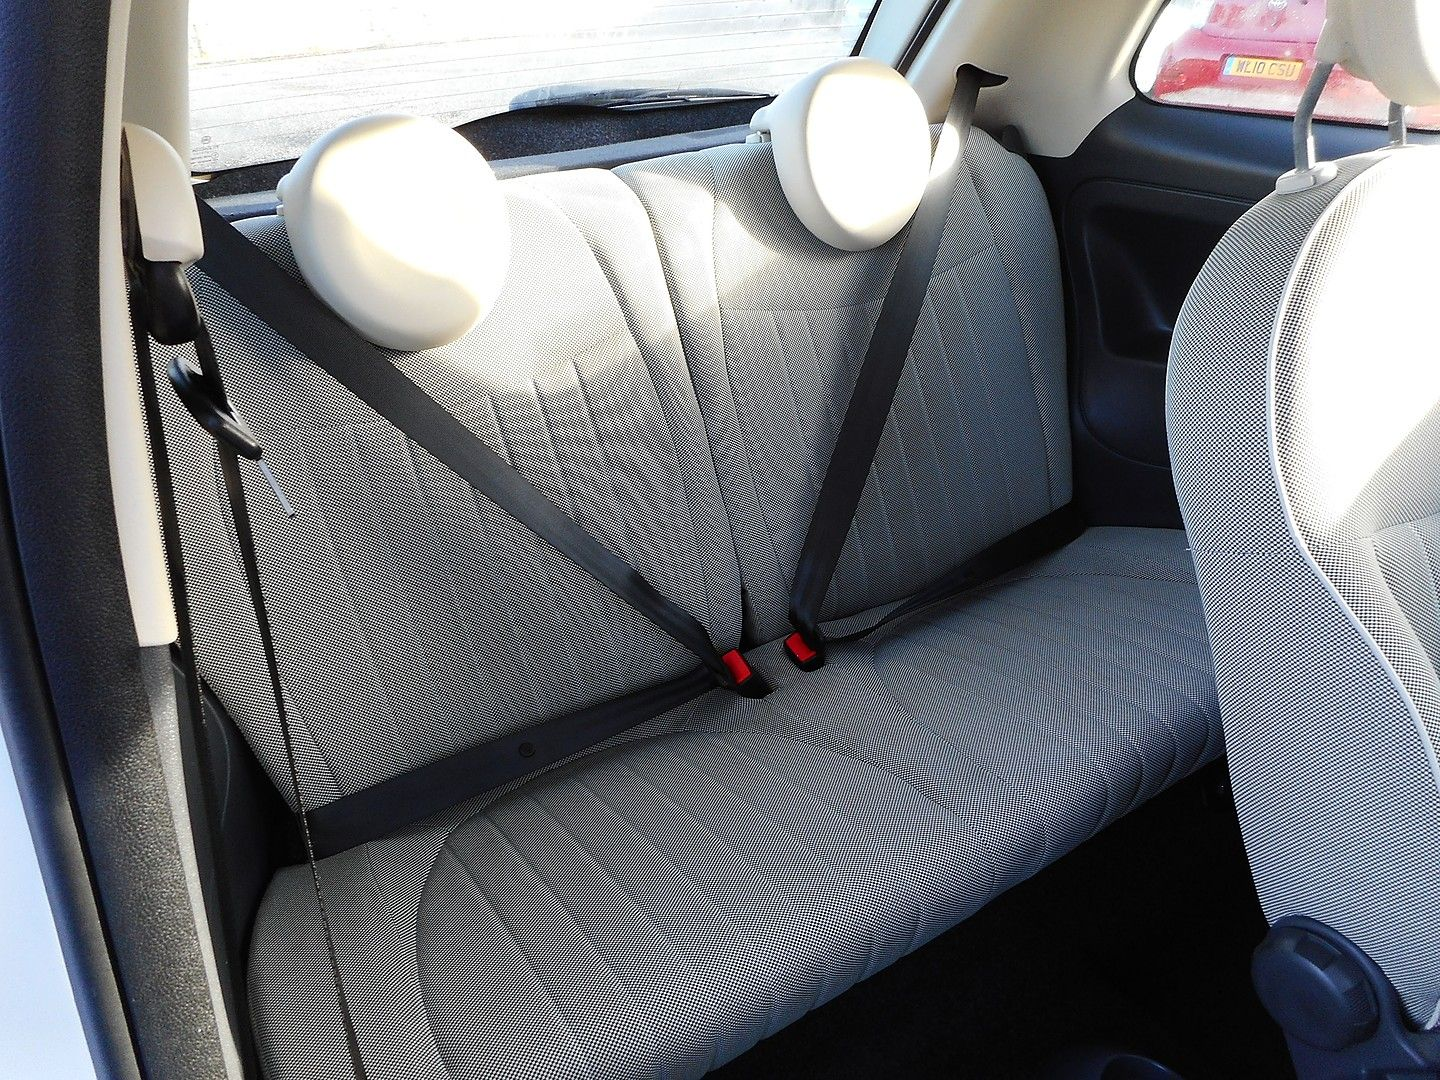 FIAT 500 1.2i Lounge S/S automatic (2013) - Picture 15